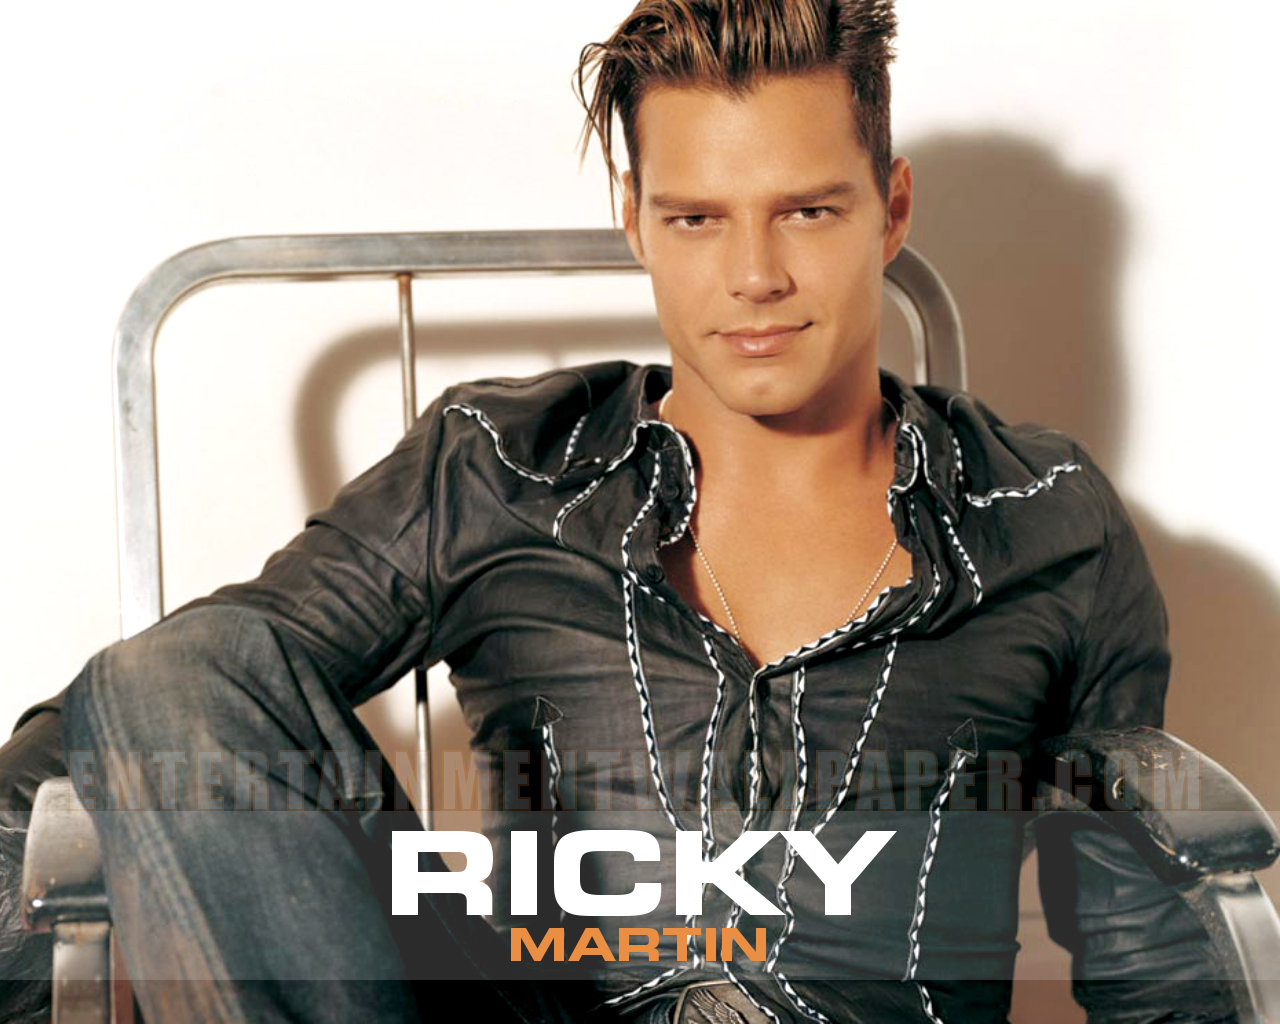 Ricky Martin Wallpaper Desktop Download 1280x1024px